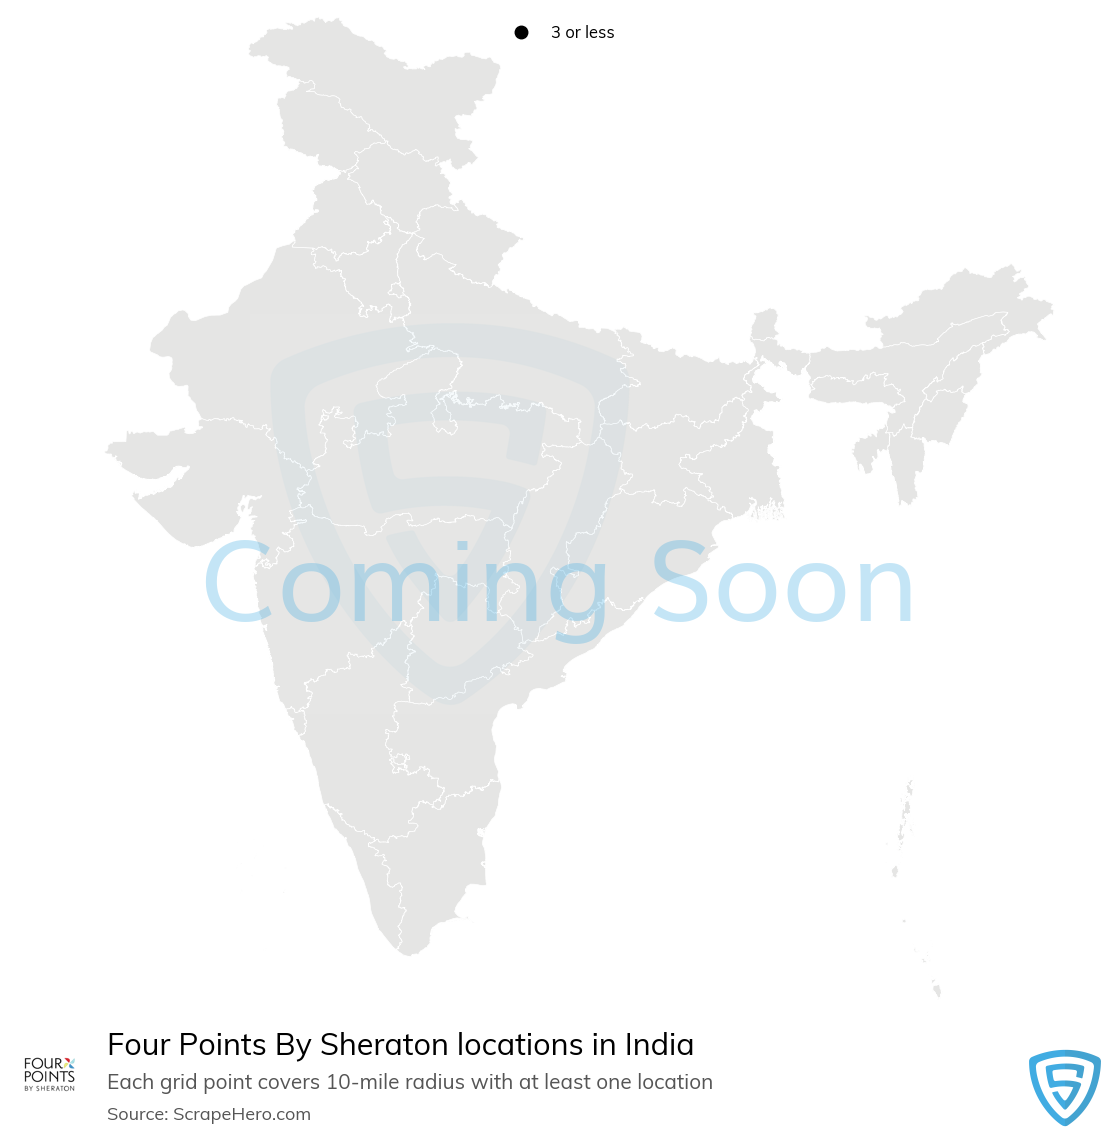 Four Points By Sheraton Hotels locations in India